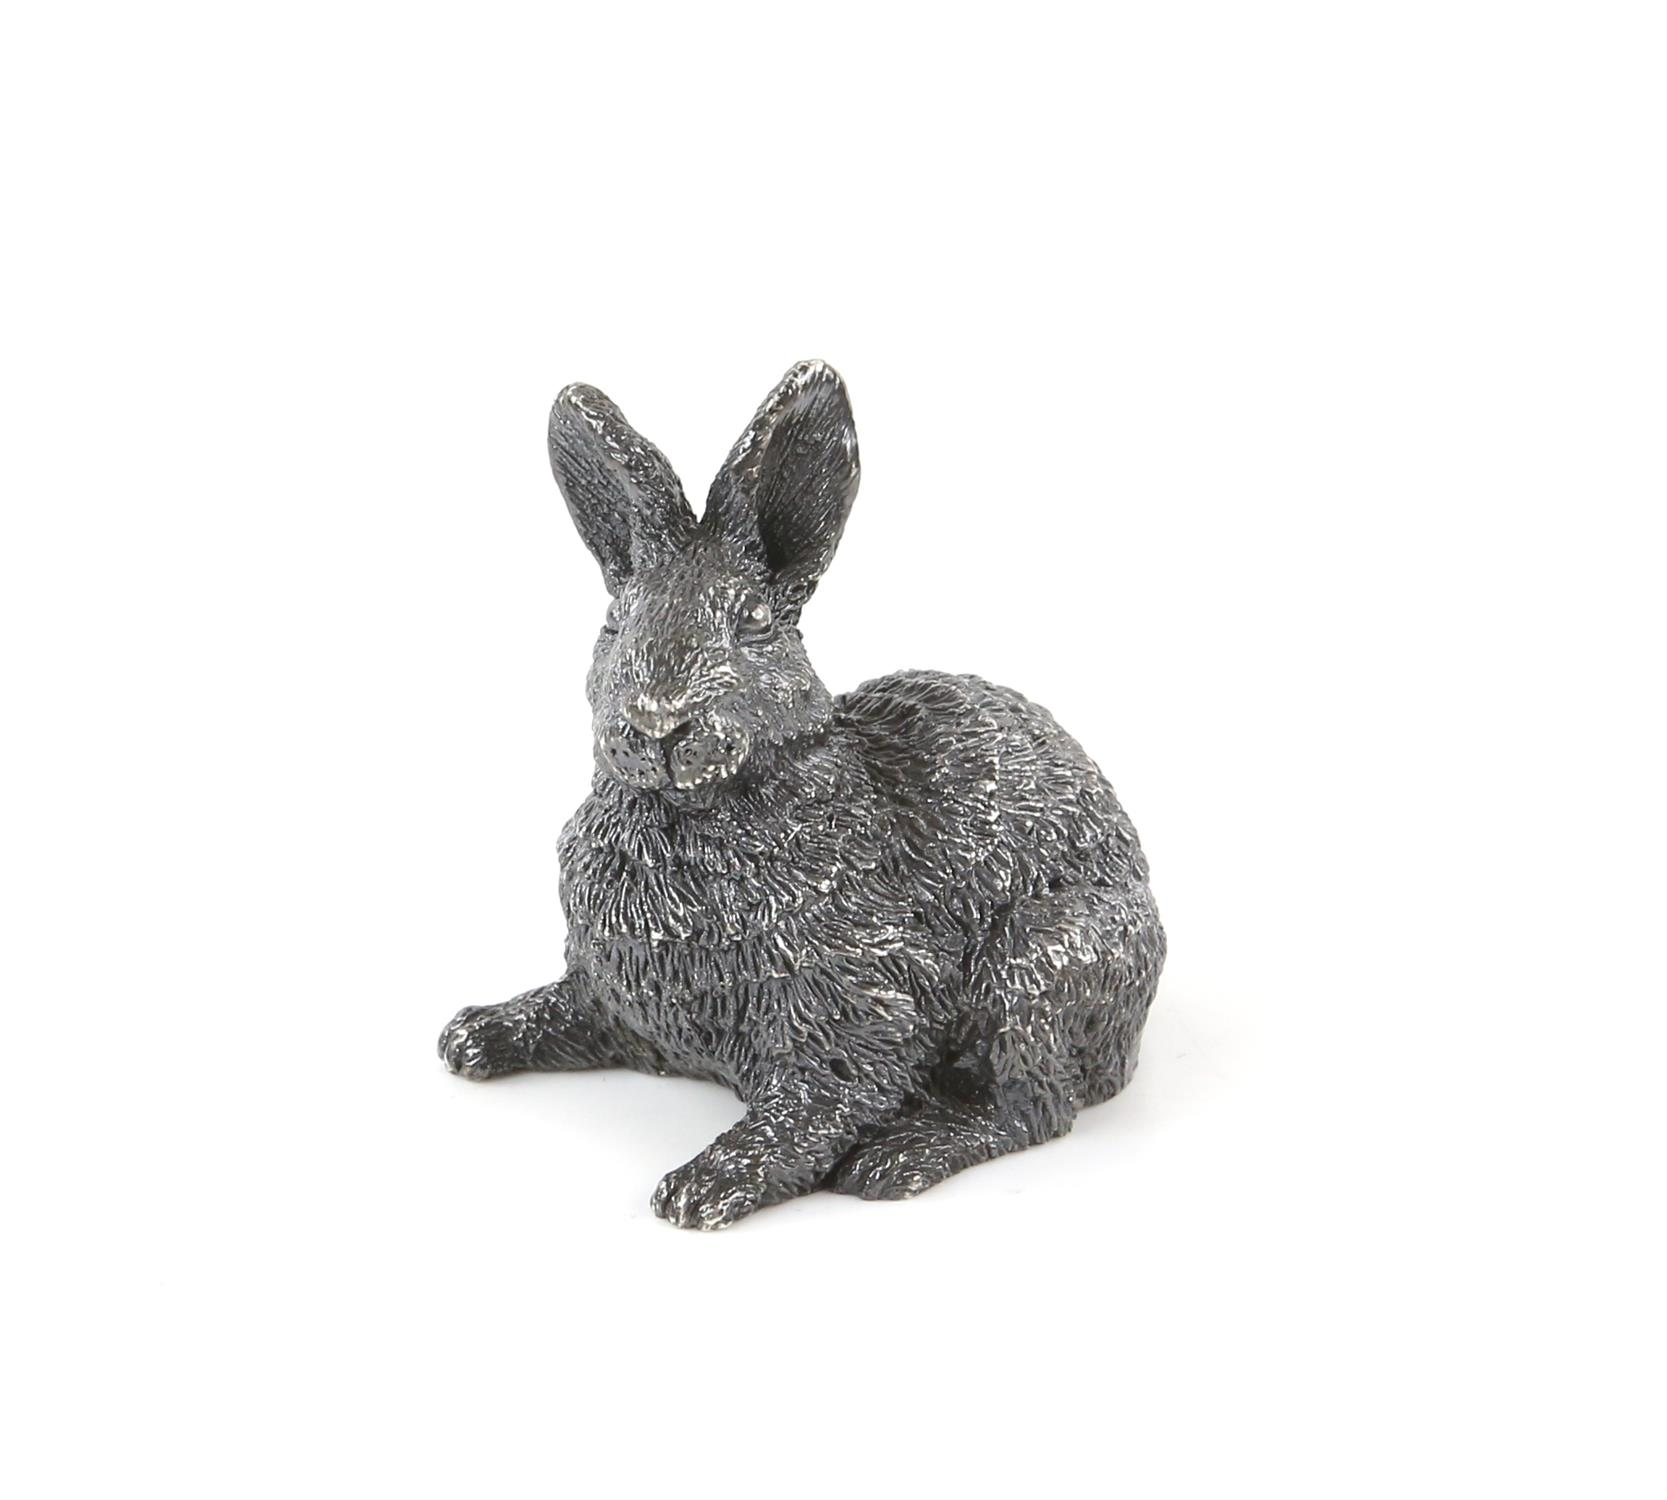 Silver model of a rabbit with import marks for London by FM - Image 2 of 4